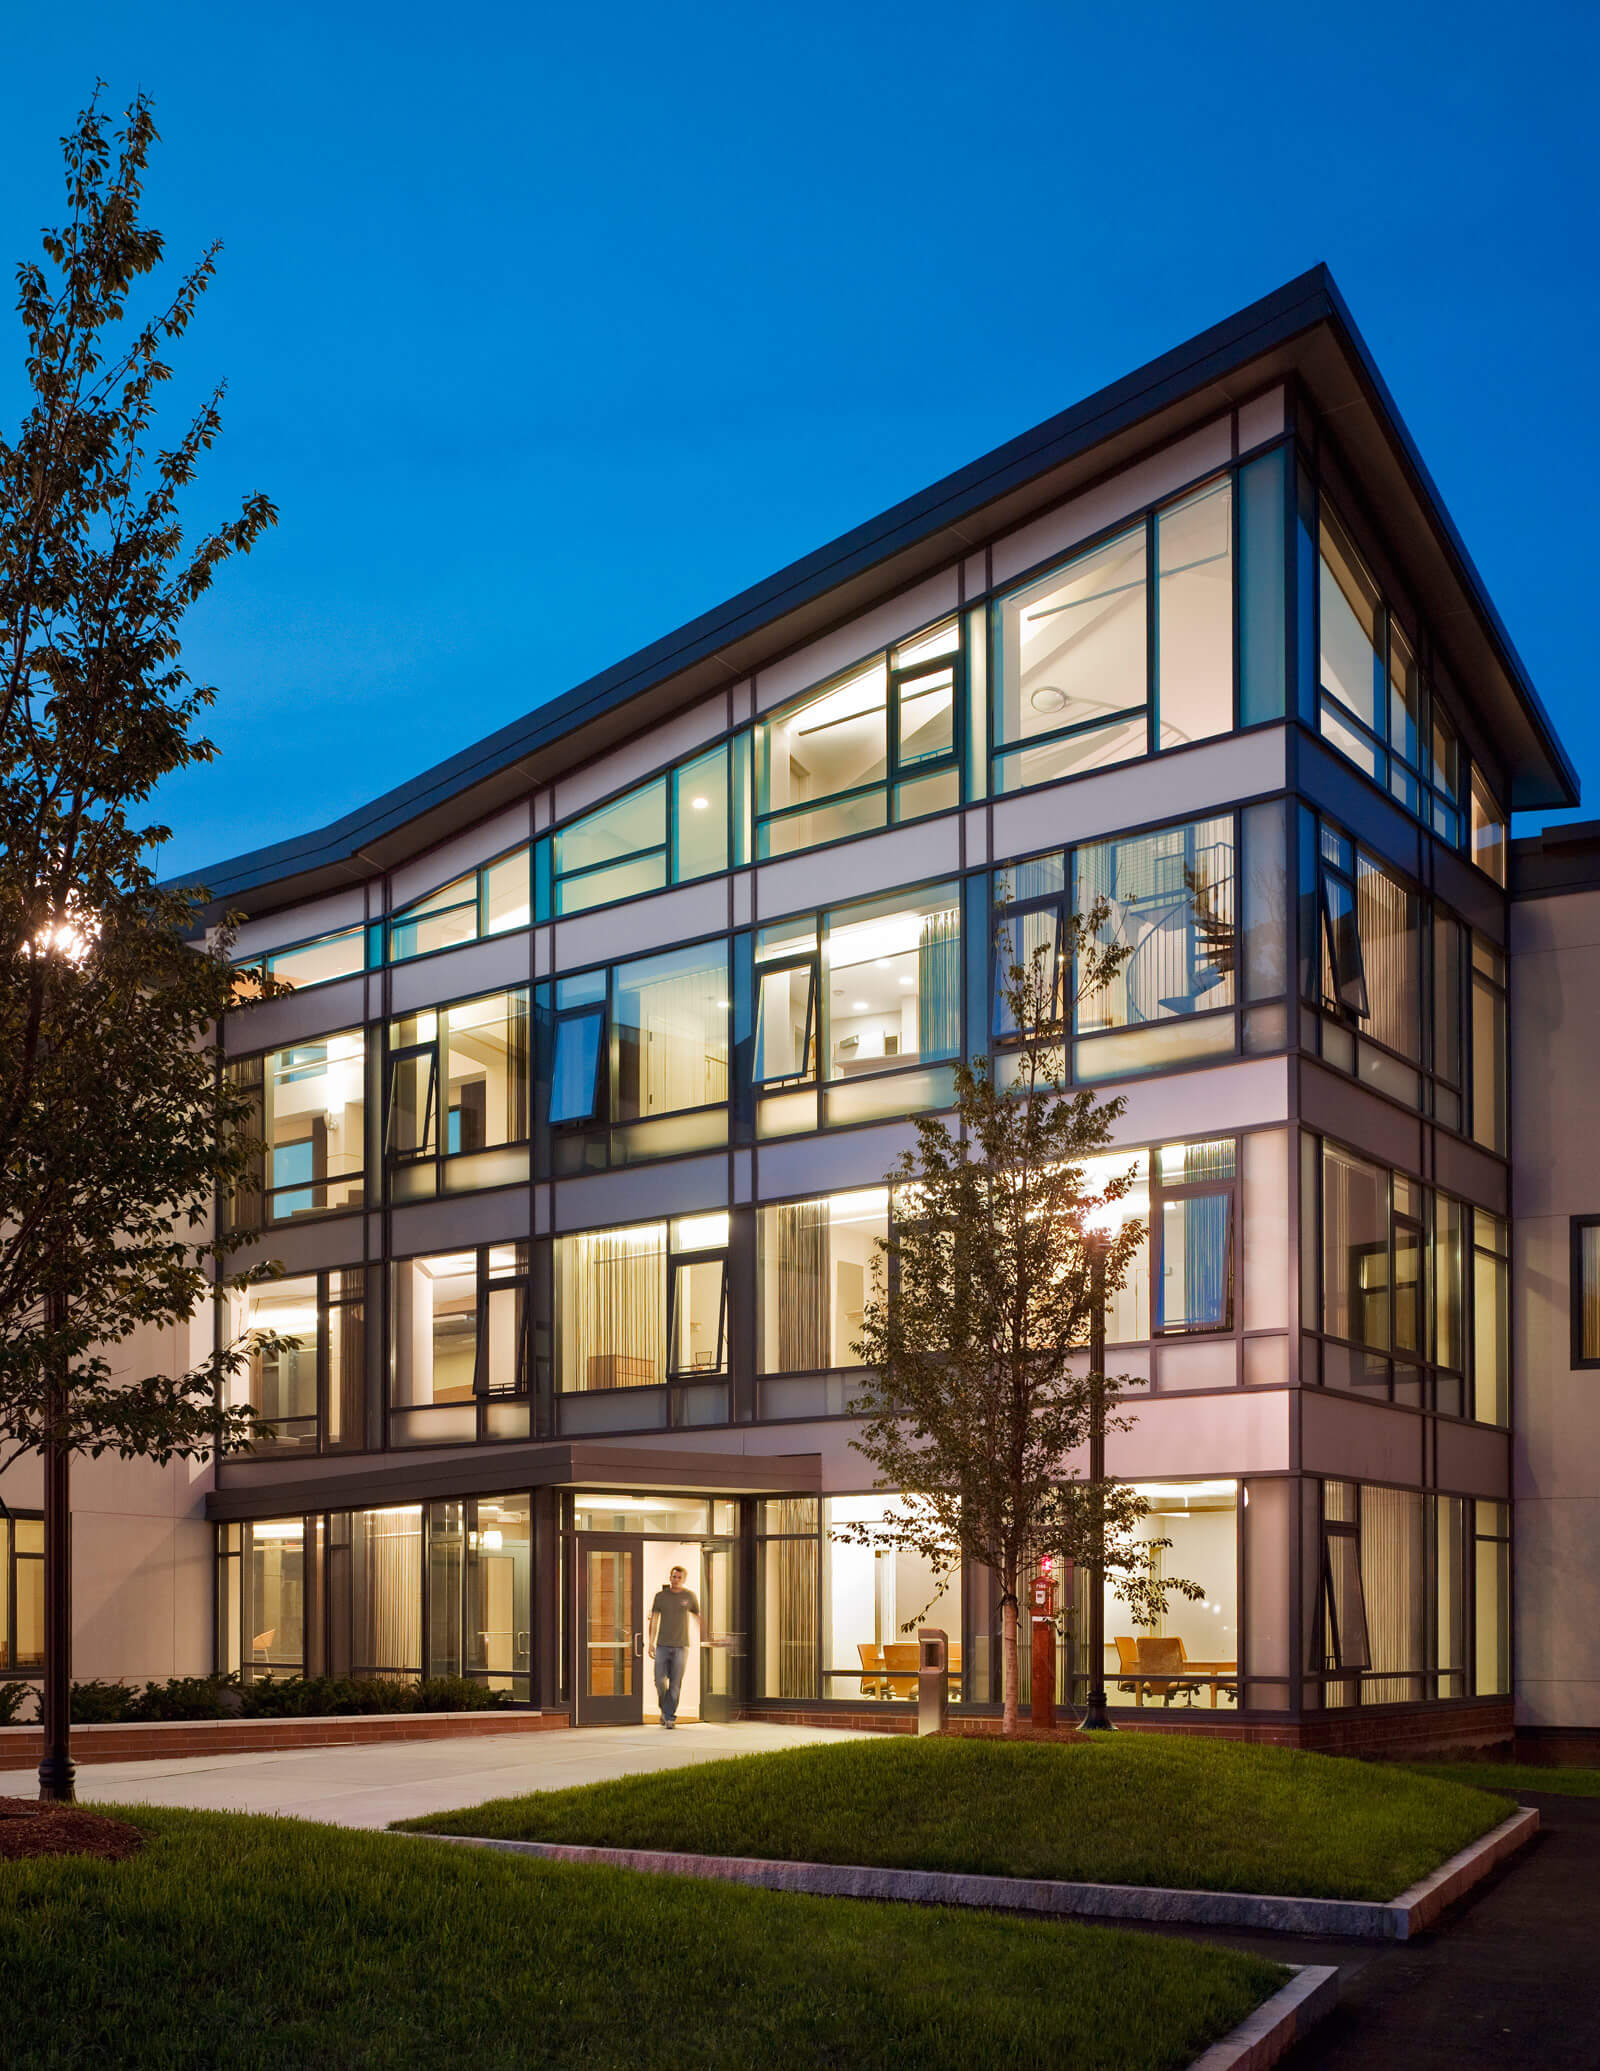 Modern dorm building with upward sloping roof, its large windows illuminated from the inside at dusk / night.